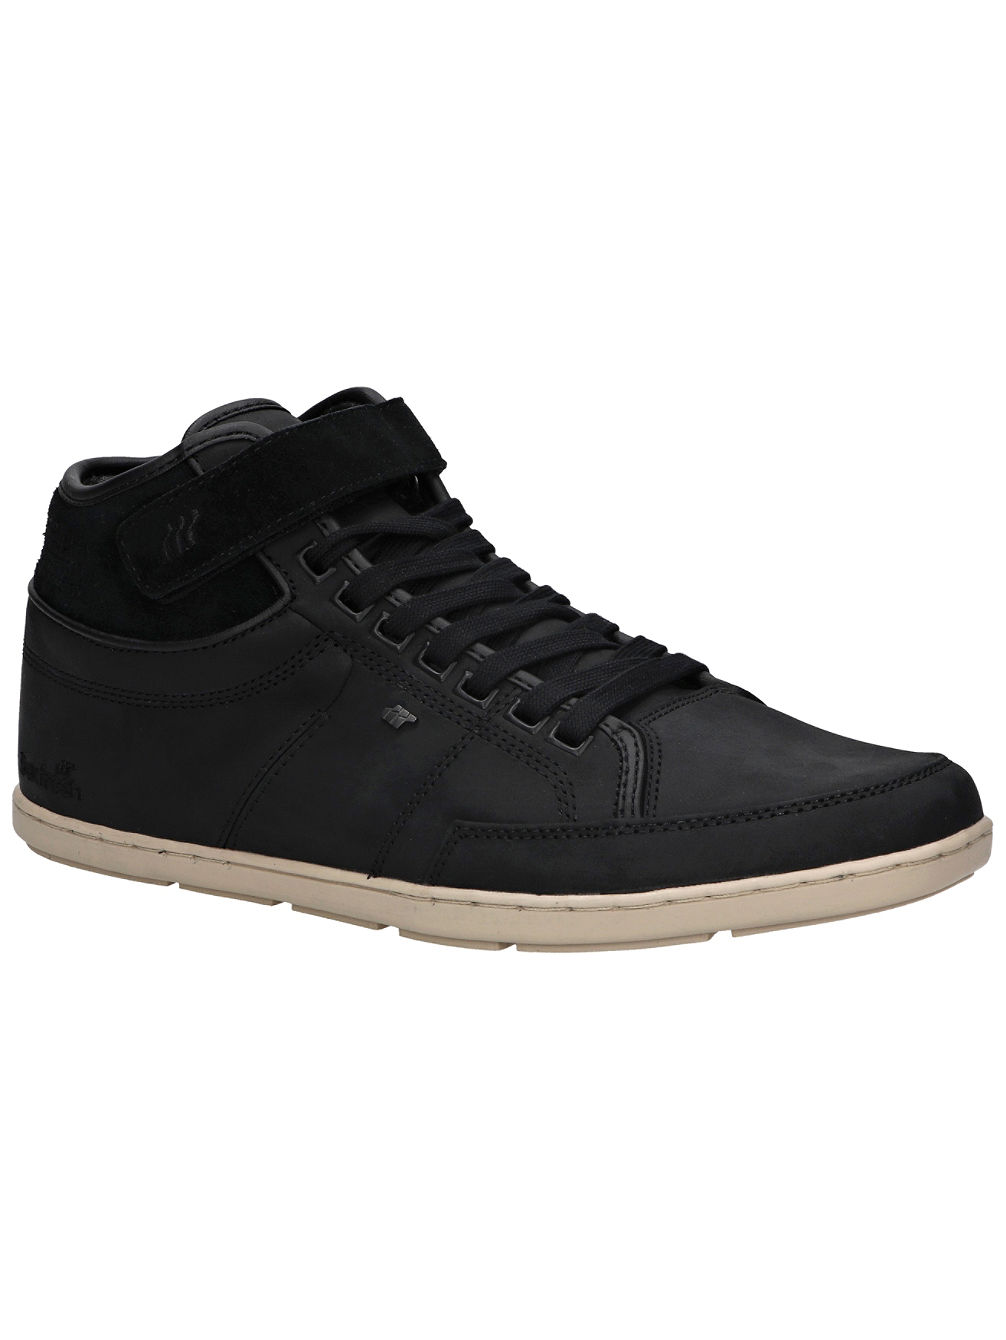 new products 57acf 0dfc1 Swich Blok Shoes